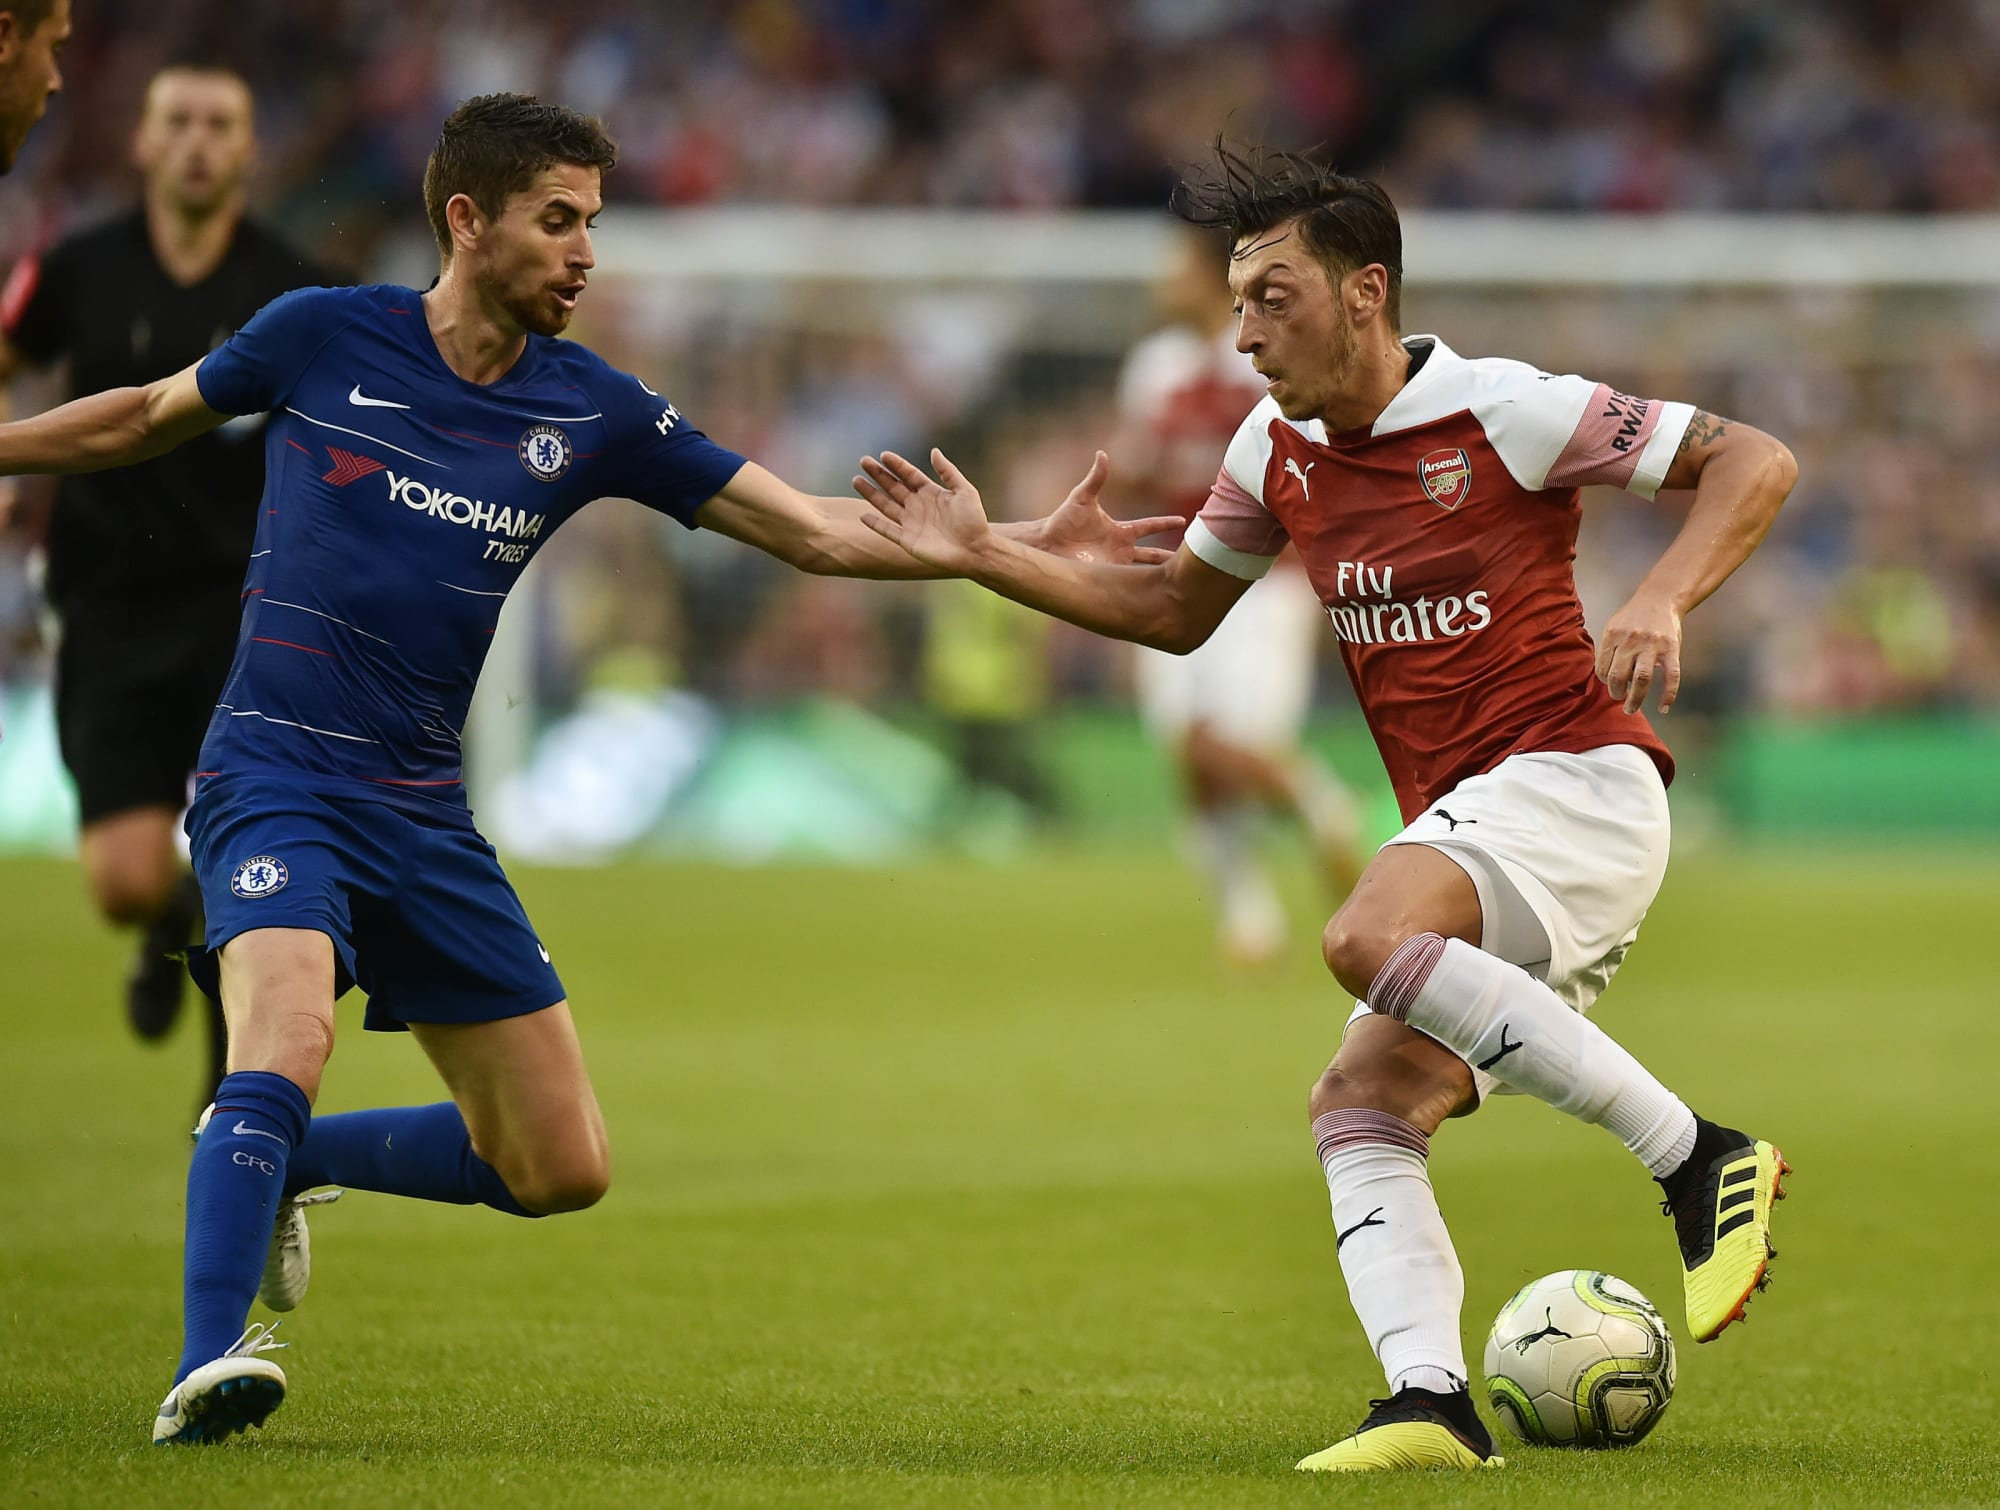 Arsenal Vs Chelsea: 3 players who impressed - Good old ...